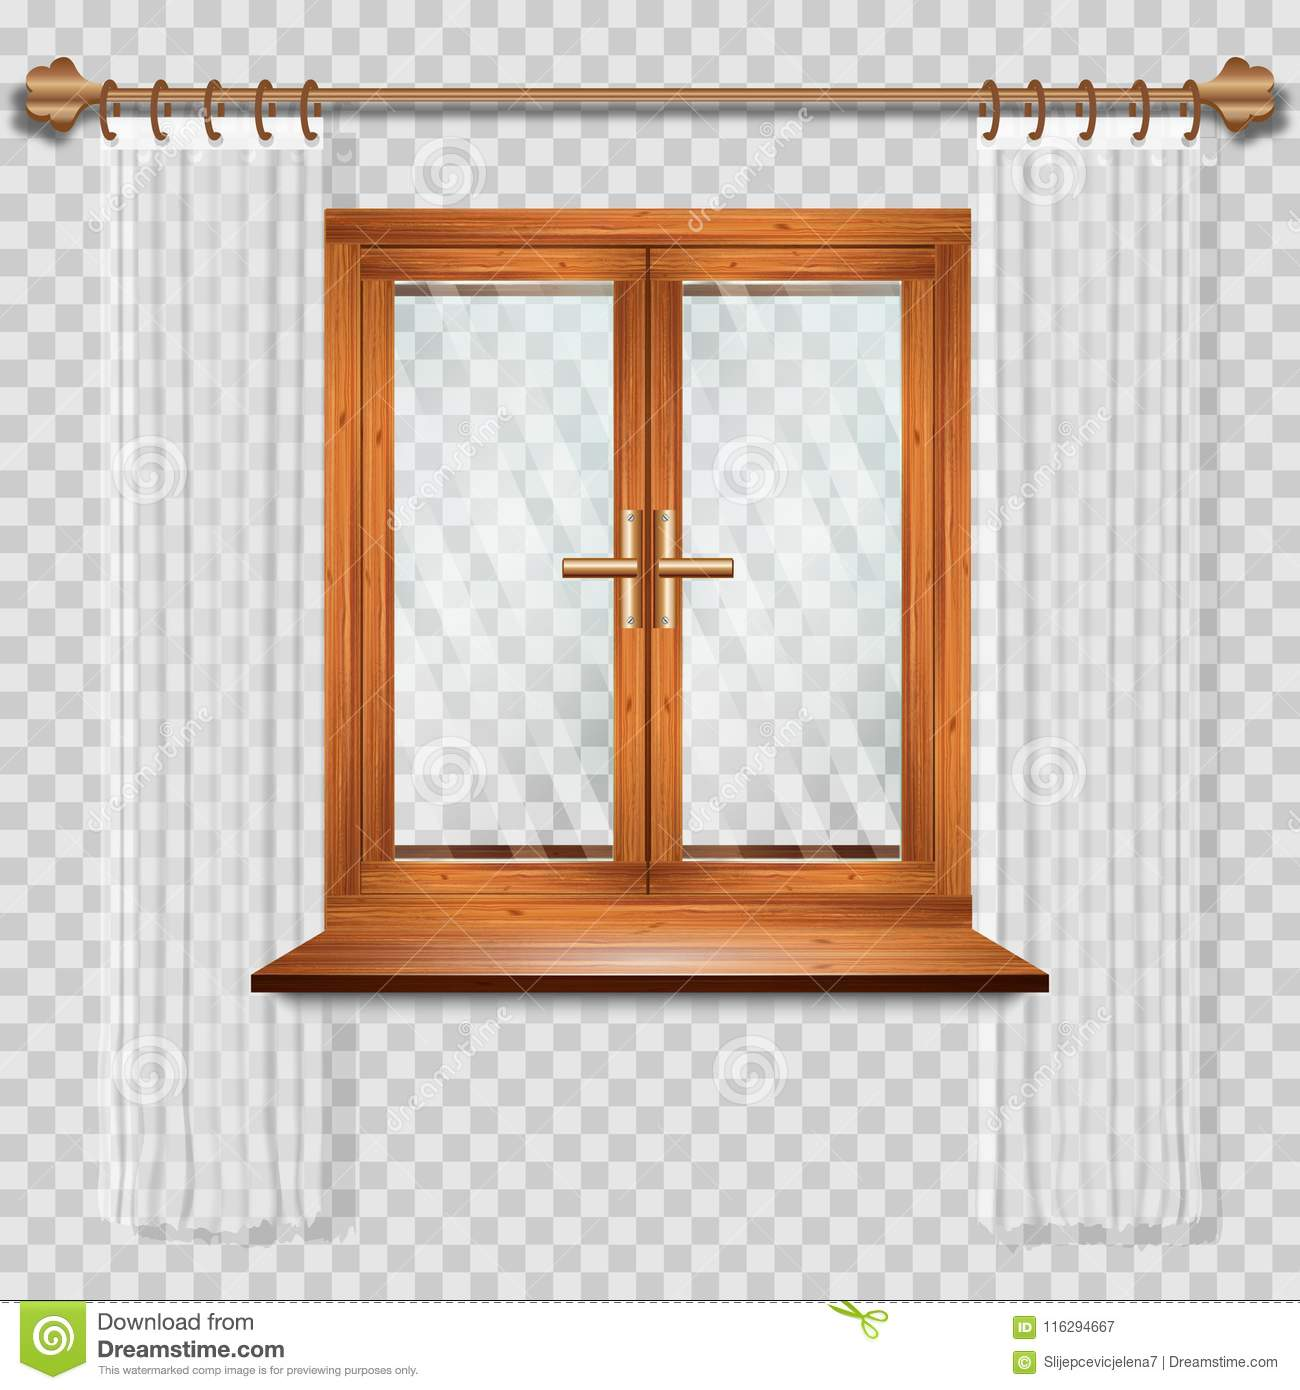 Transom Windows A Useful Design Element: Closed Window Stock Vector. Illustration Of Design, Frame